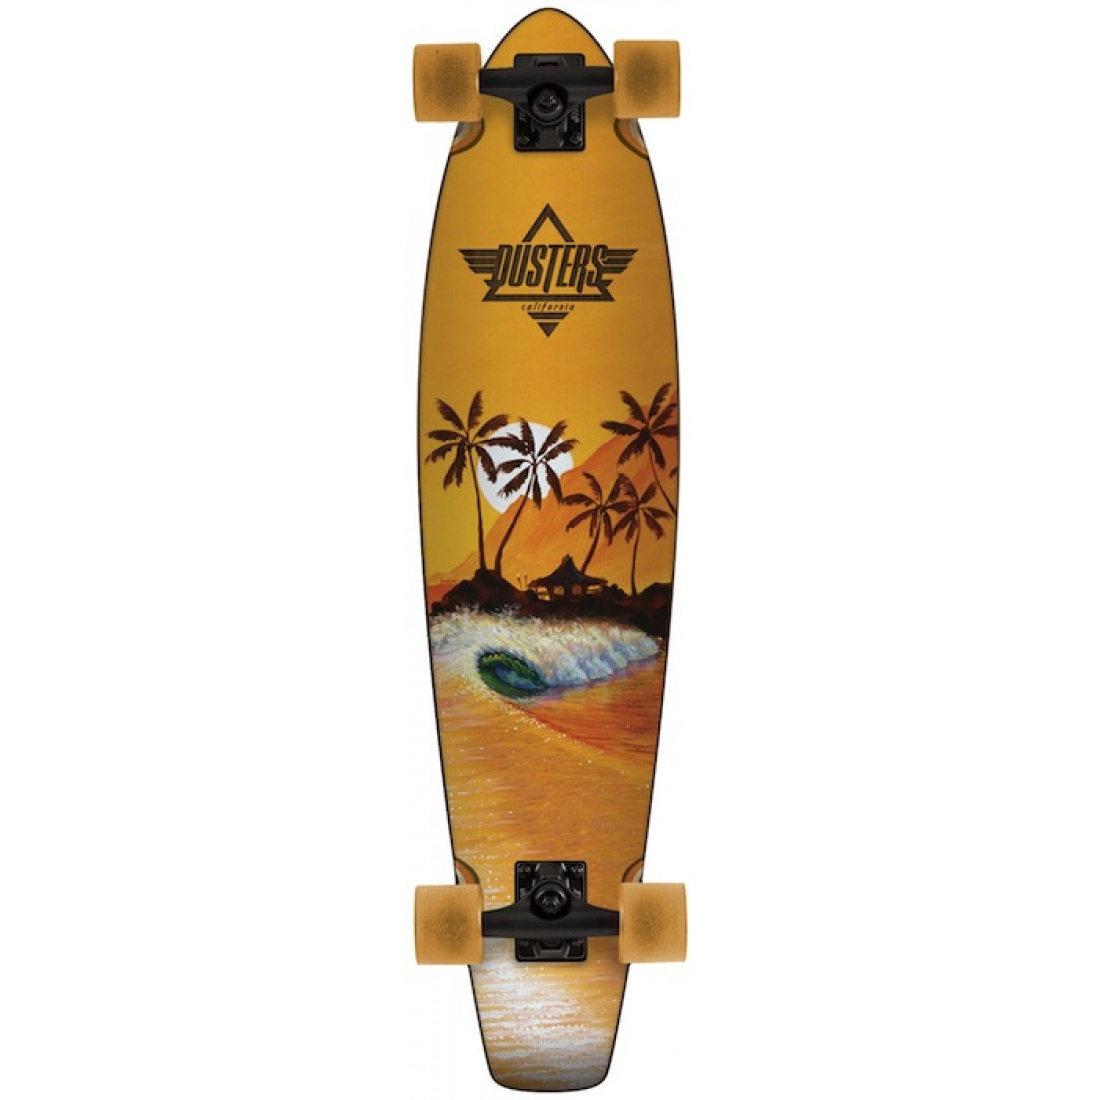 DUS-Happy Hour Orange 36 Longboard